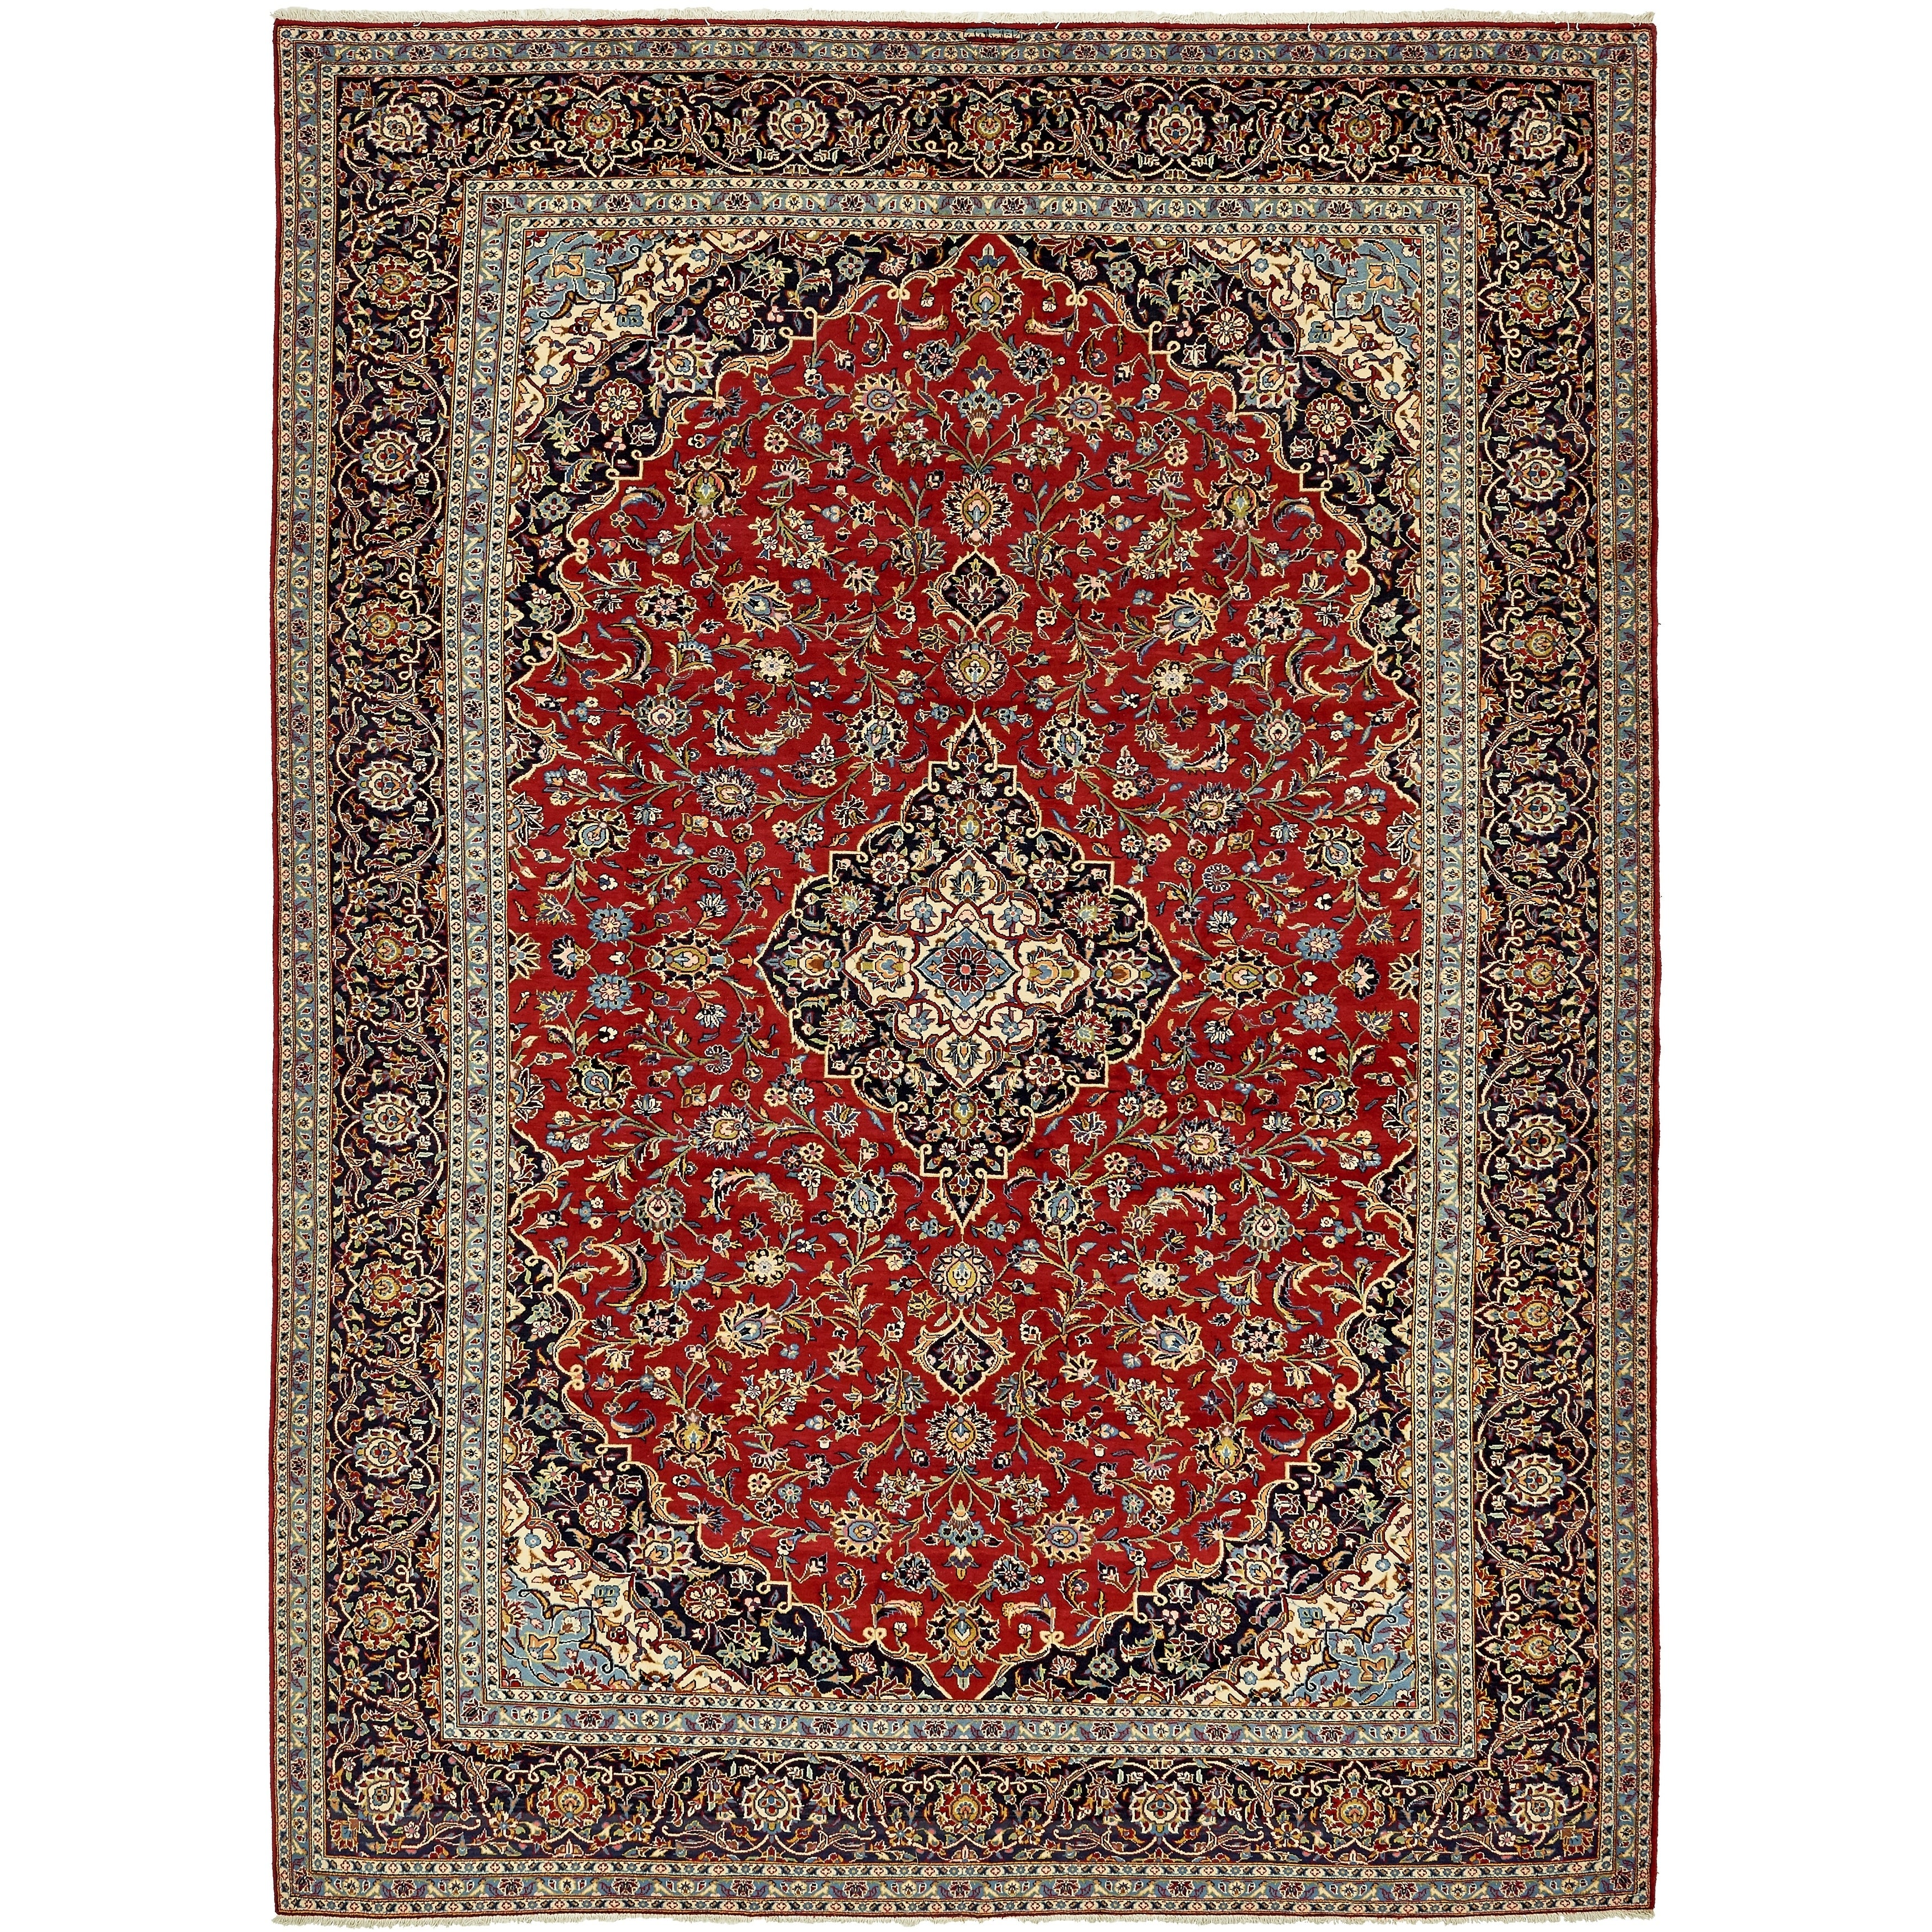 Hand Knotted Kashan Wool Area Rug - 9 10 x 13 5 (Red - 9 10 x 13 5)